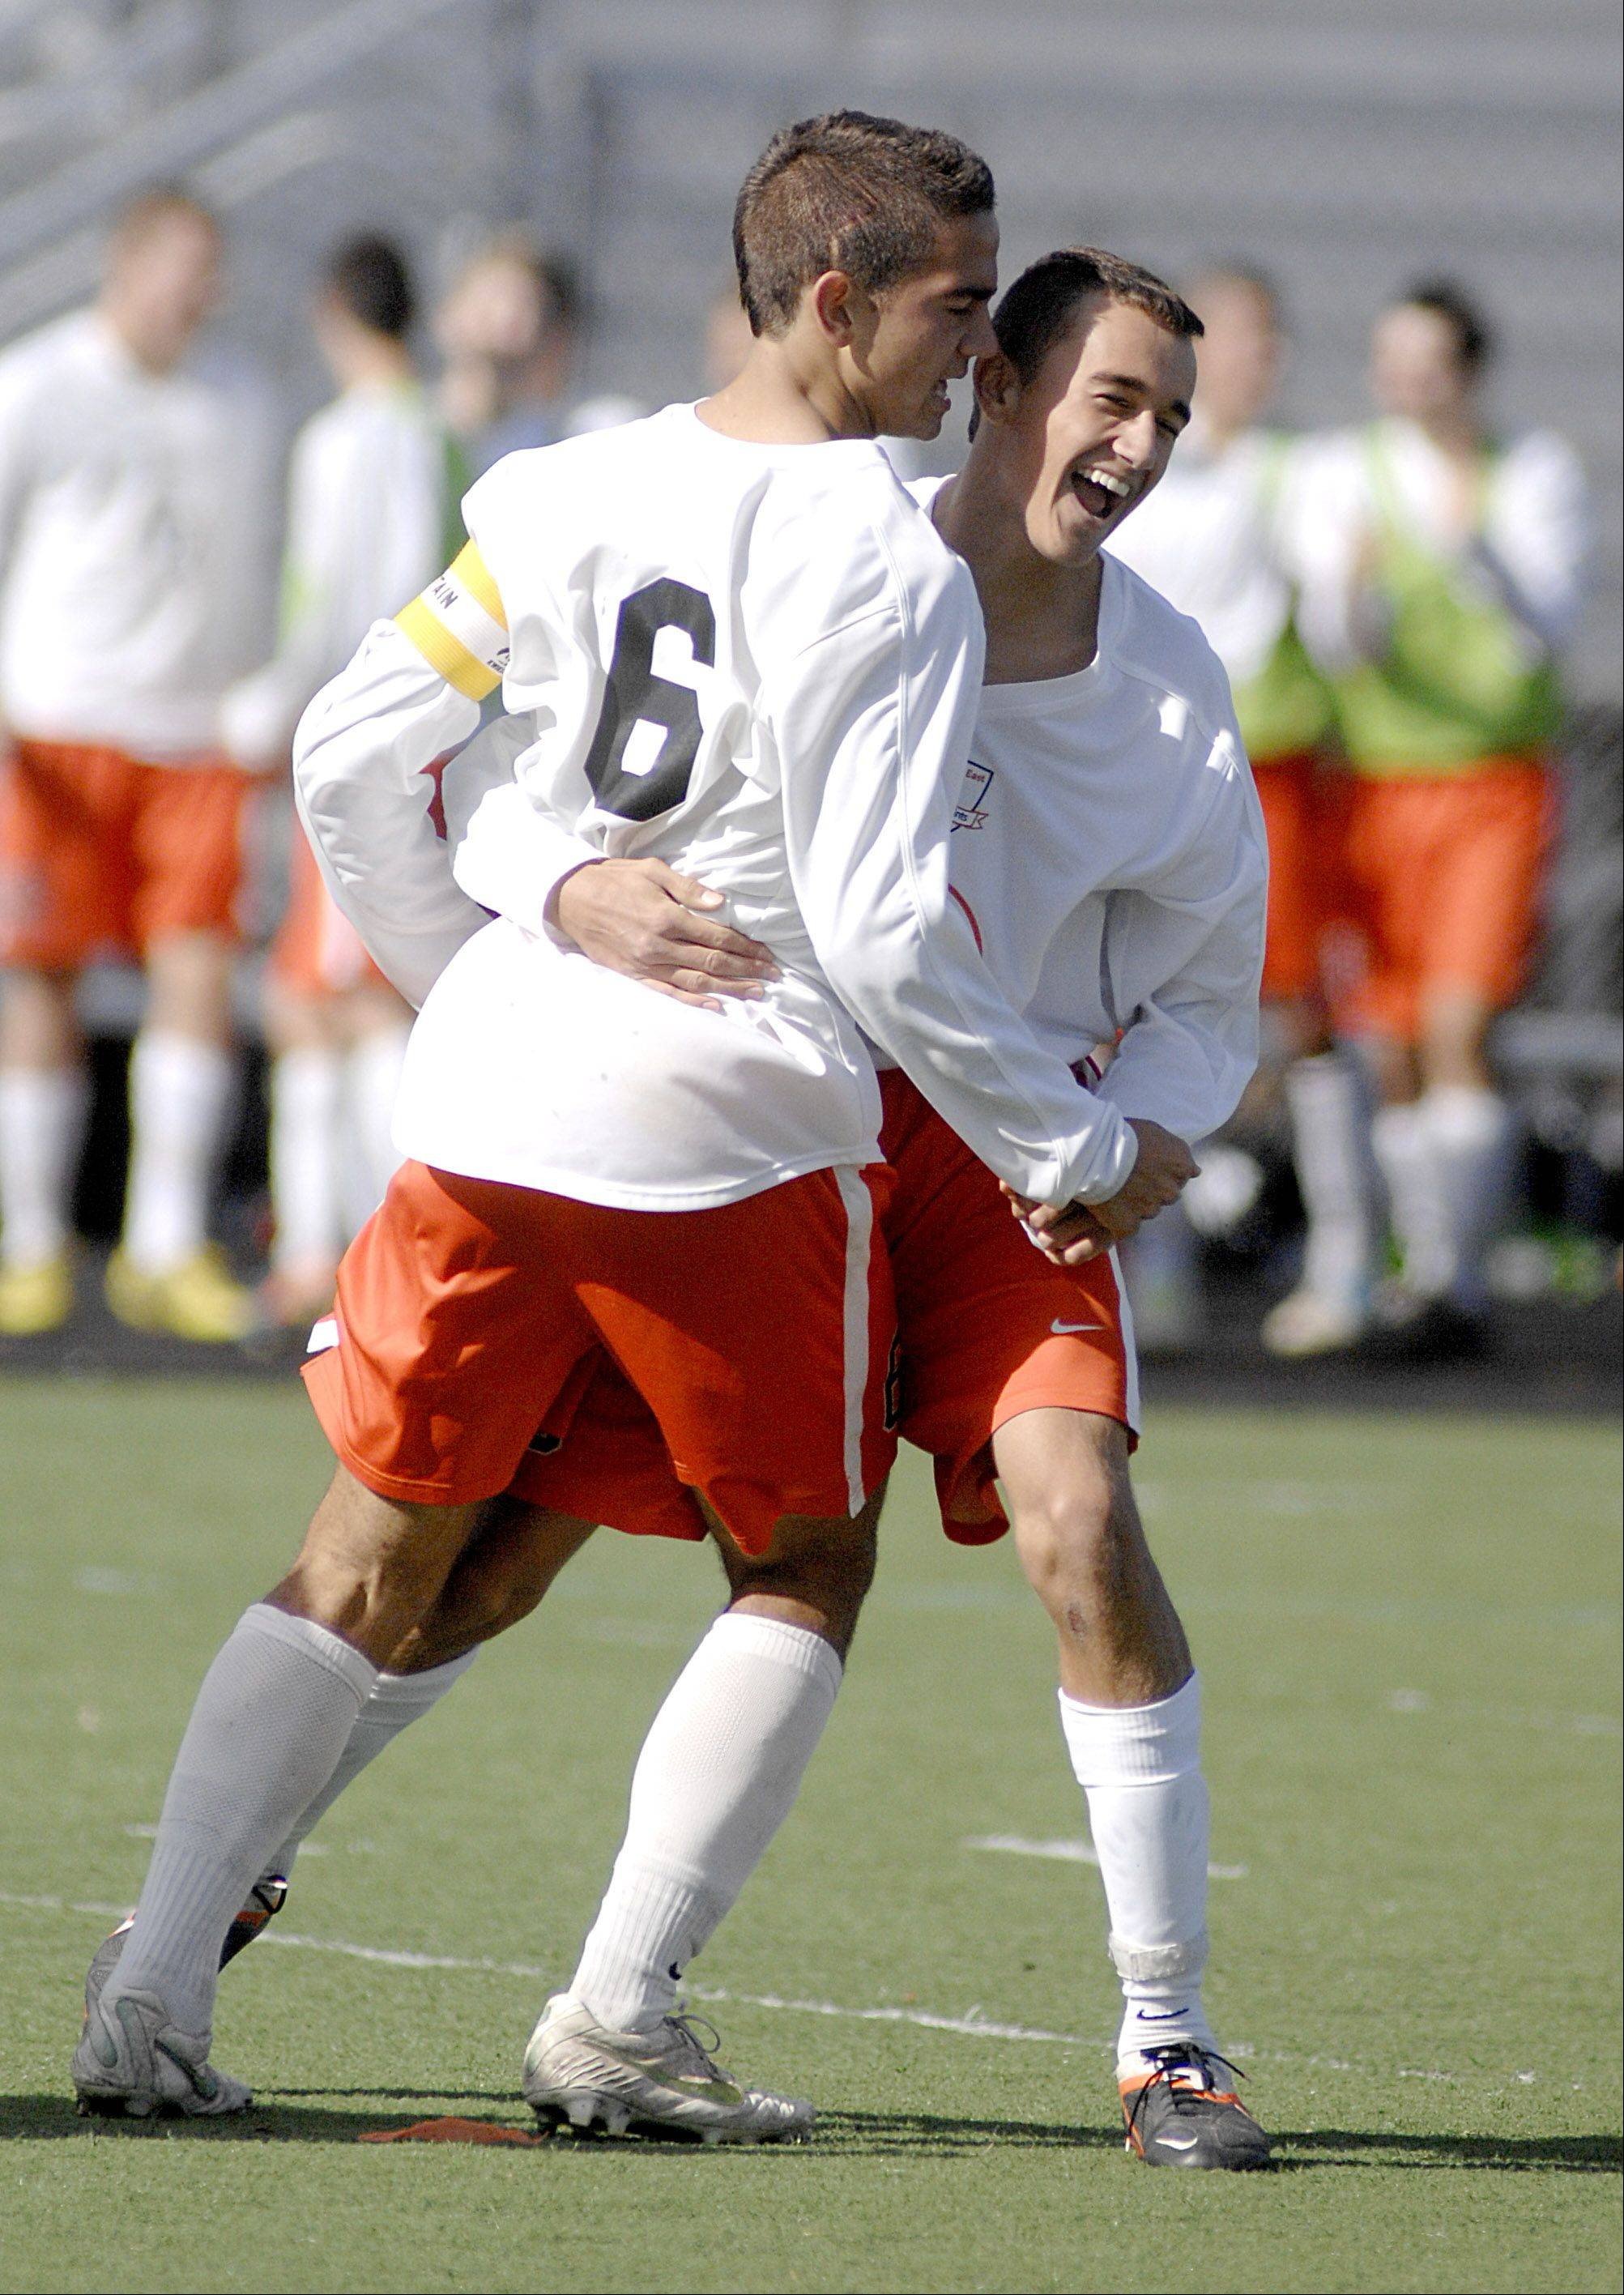 St. Charles East's Michael Macek, left, gets a hug from teammate Jordan Moore after Macek scored a goal in the second half on Saturday, October 20.